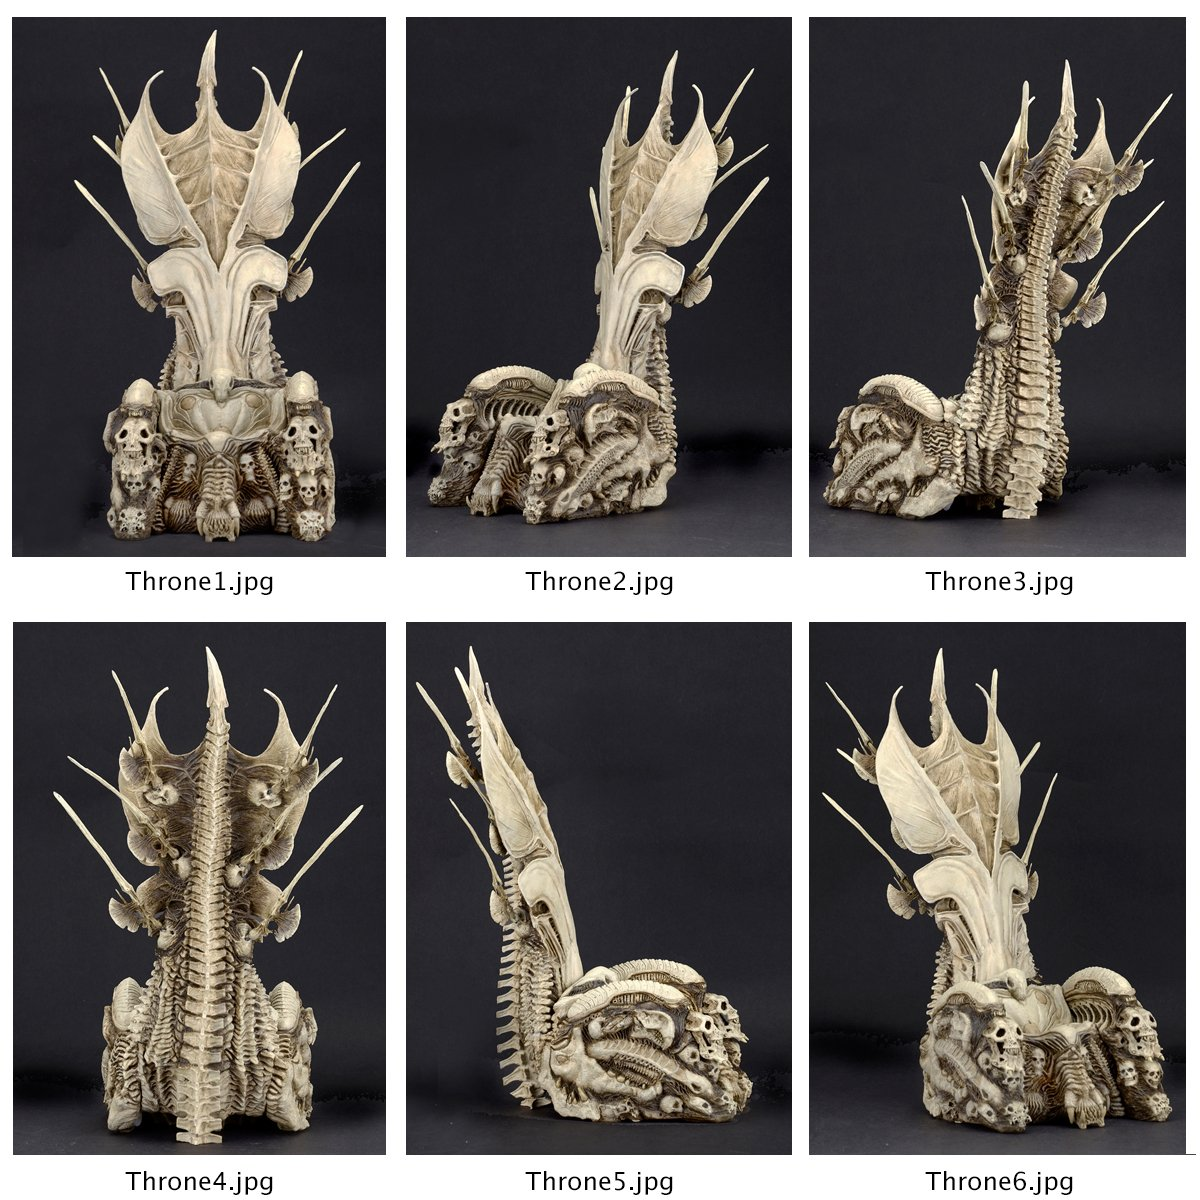 New Preview for The Alien vs Predator Bone Throne - The ...